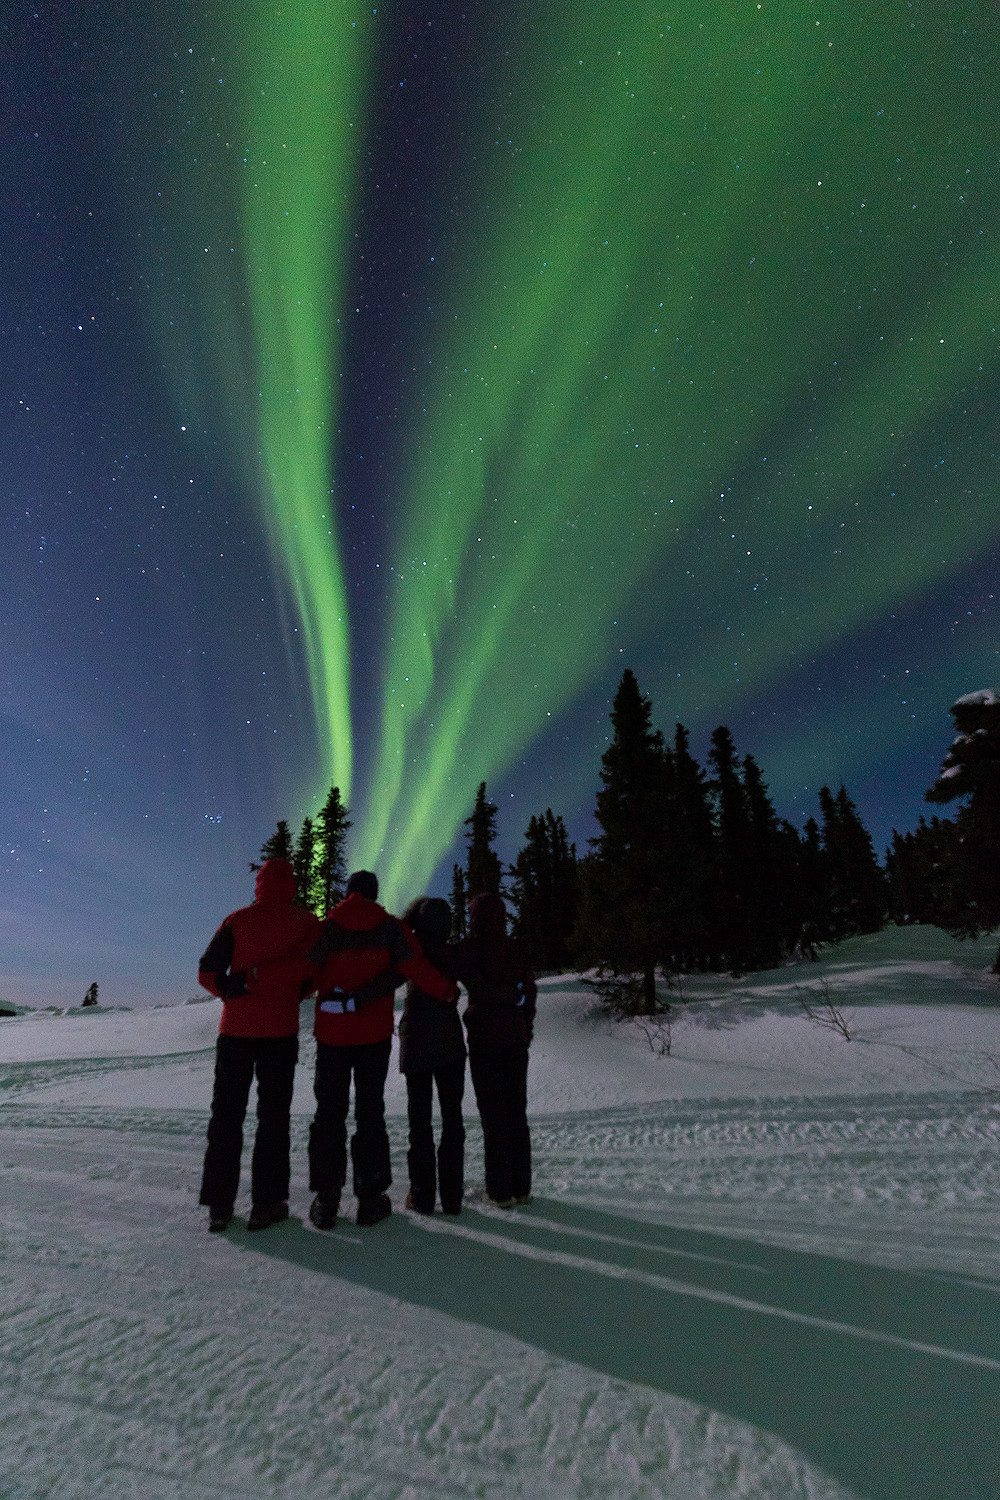 A group stands underneath the Aurora Borealis as its lights dance above them. Photographed by Chase Dekker.